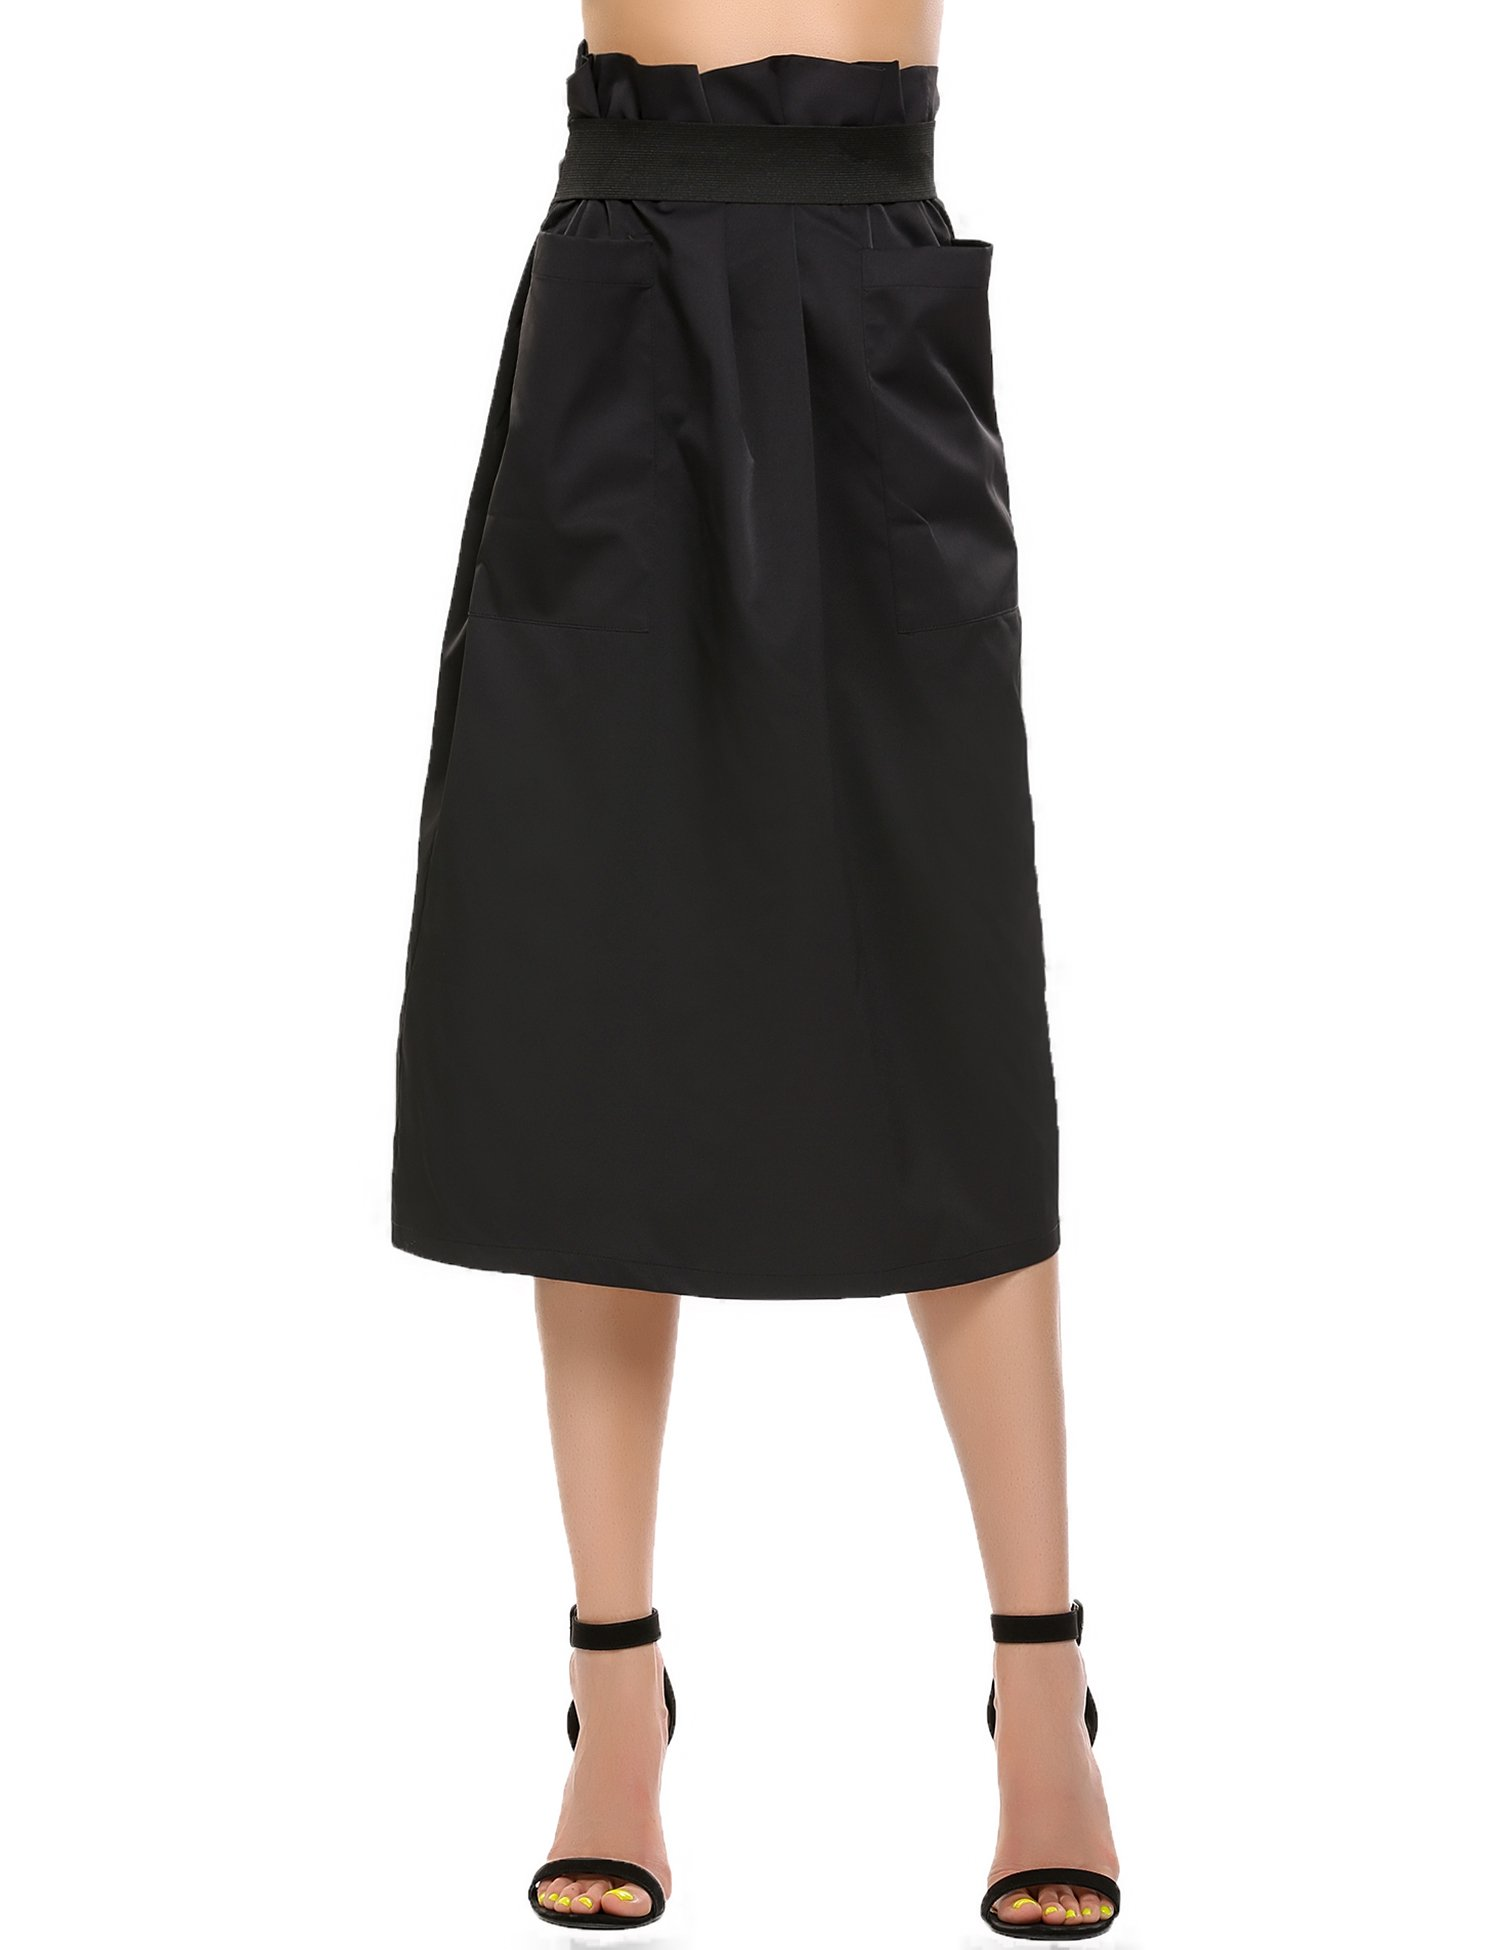 Women Casual High Waisted African A Line Maxi Long Skirt Black Small by Zeagoo (Image #5)